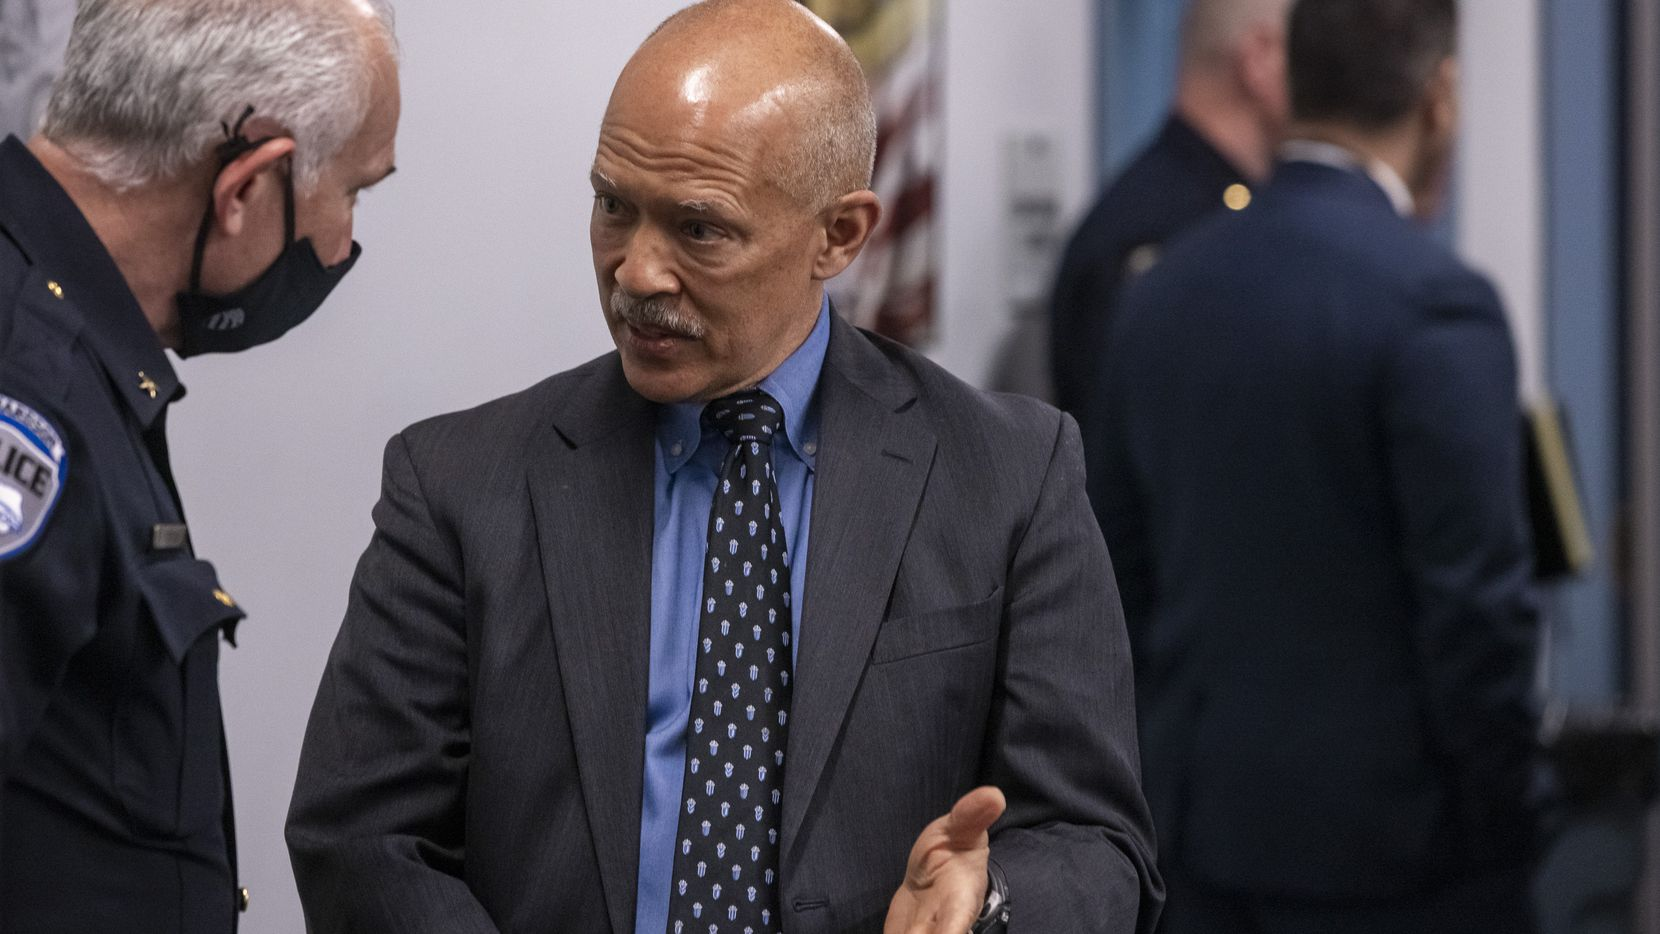 Dallas District Attorney John Creuzot, right, chats with recently promoted Richardson Police Chief Gary Tittle during an open house held for media at the new downtown location of the North Texas Regional Computer Forensics Laboratory (NTRCFL) in Dallas on May 11, 2021. The Dallas FBI and regional law enforcement work to solve computer crimes from this location, which has new features, such as an expanded training room. The NTRCFL is one of 17 laboratories in the country, serving as a full-service digital forensics laboratory and training center devoted entirely to the examination of digital evidence.